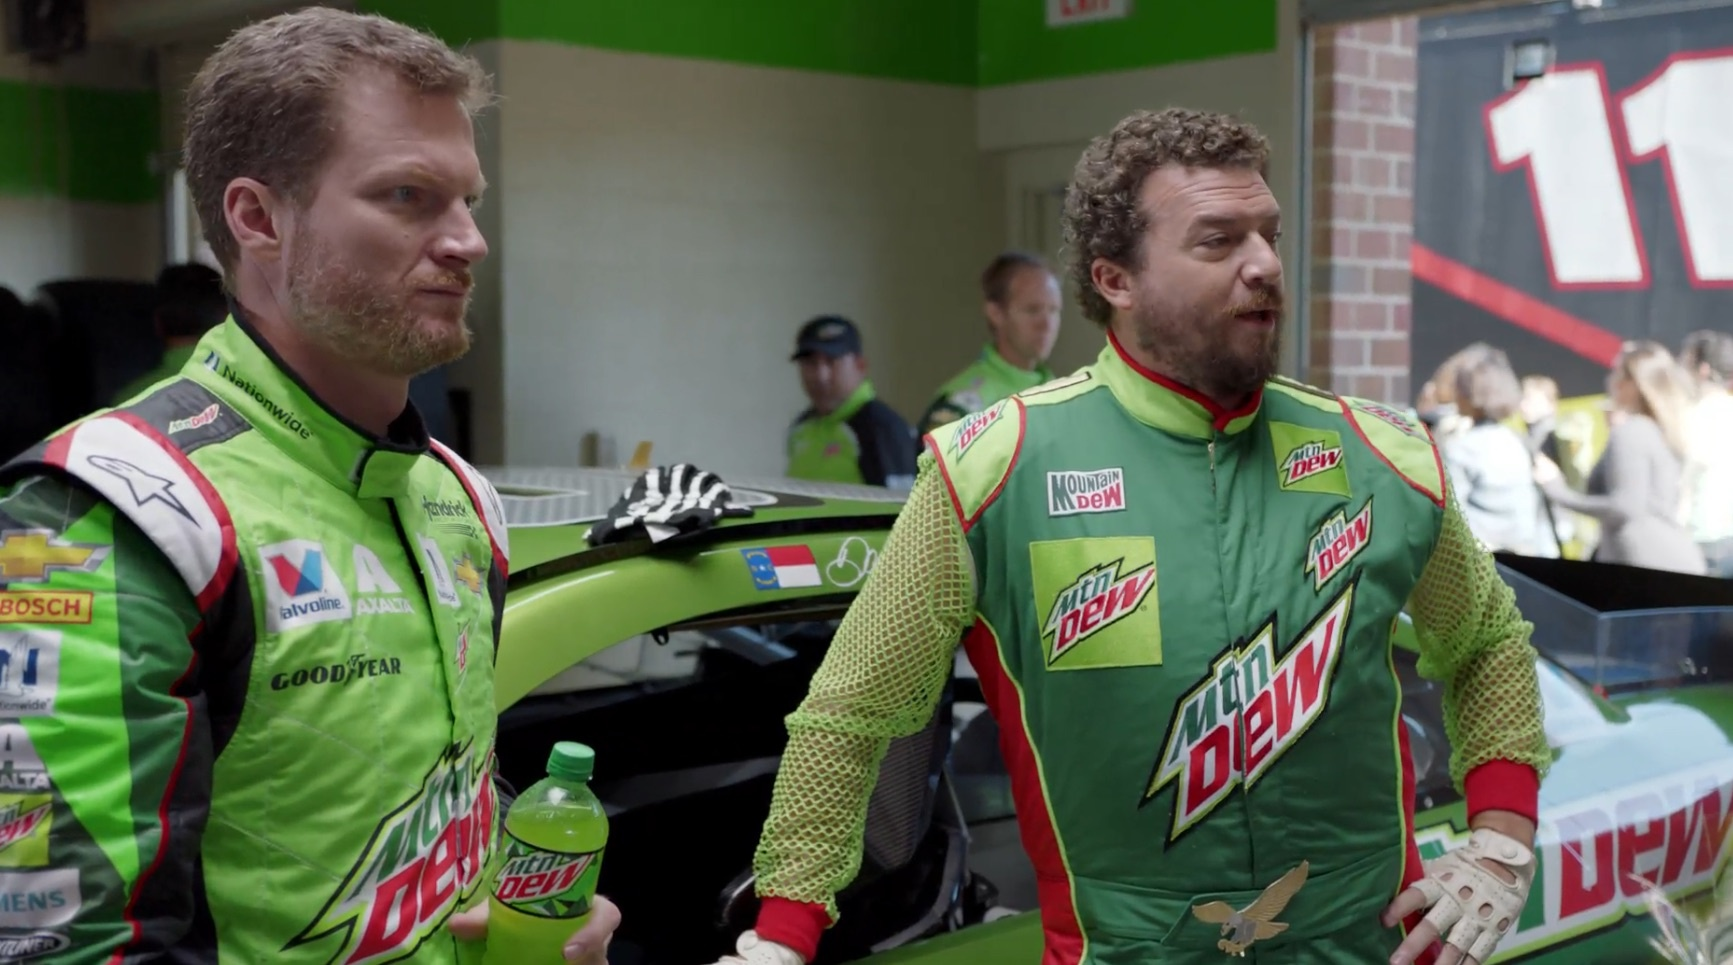 Thumbnail for Dew's New Driver: ESPN Interview